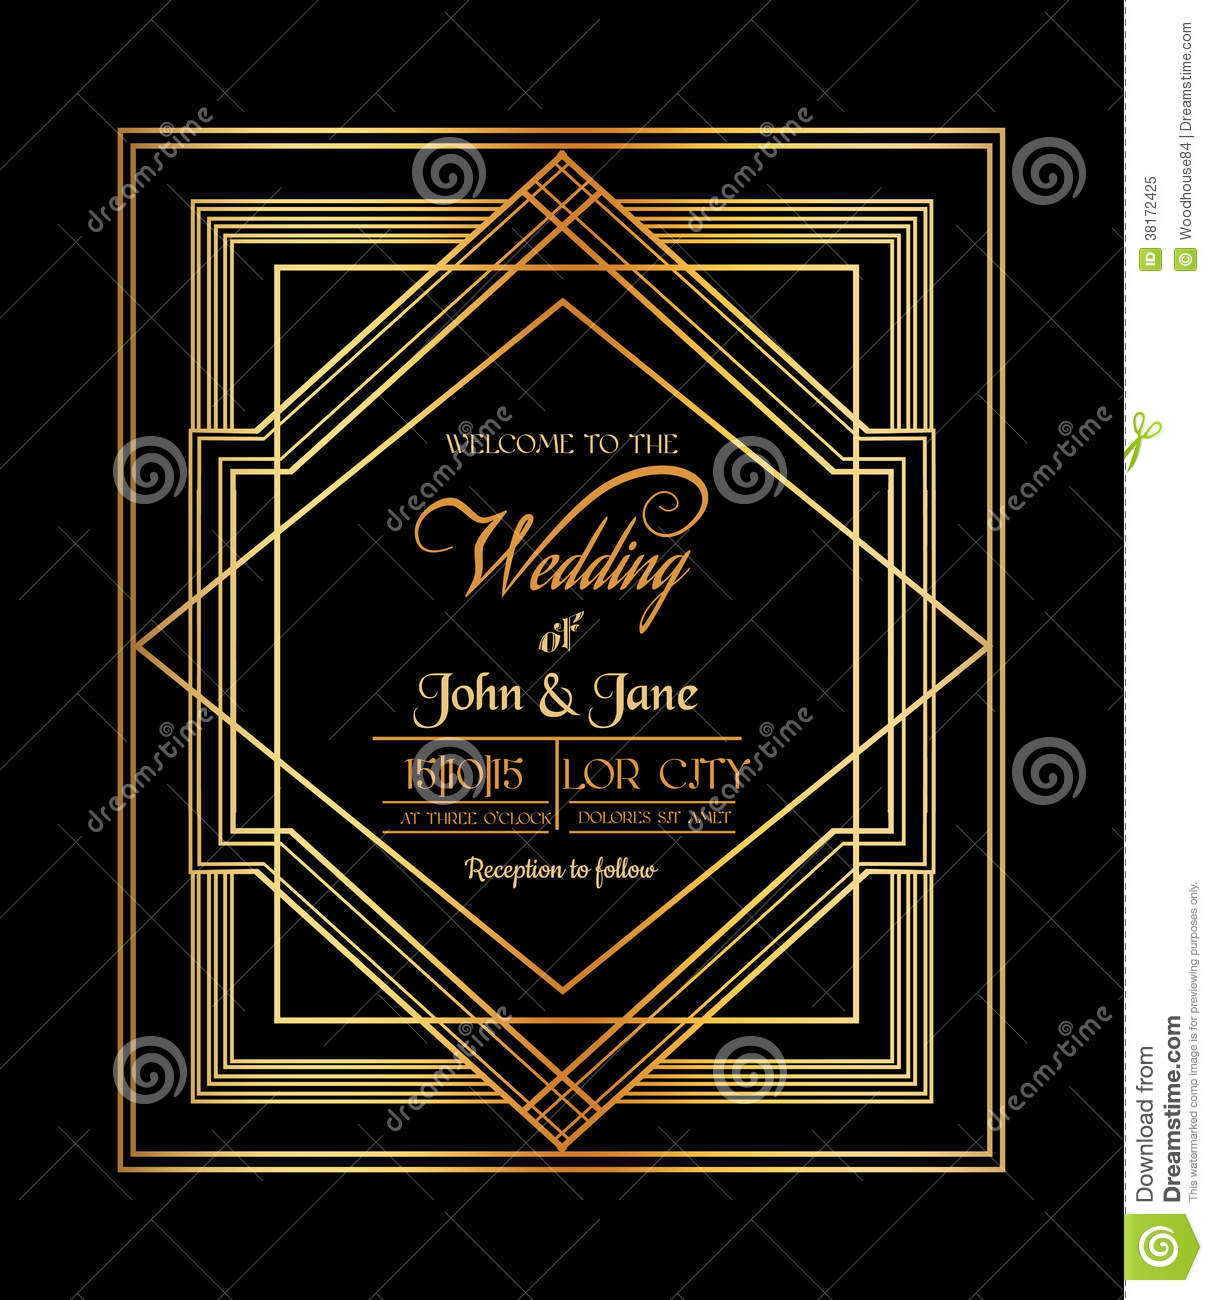 royalty free stock photo wedding invitation card art deco gatsby style save date image great gatsby wedding invitations Wedding Invitation Card